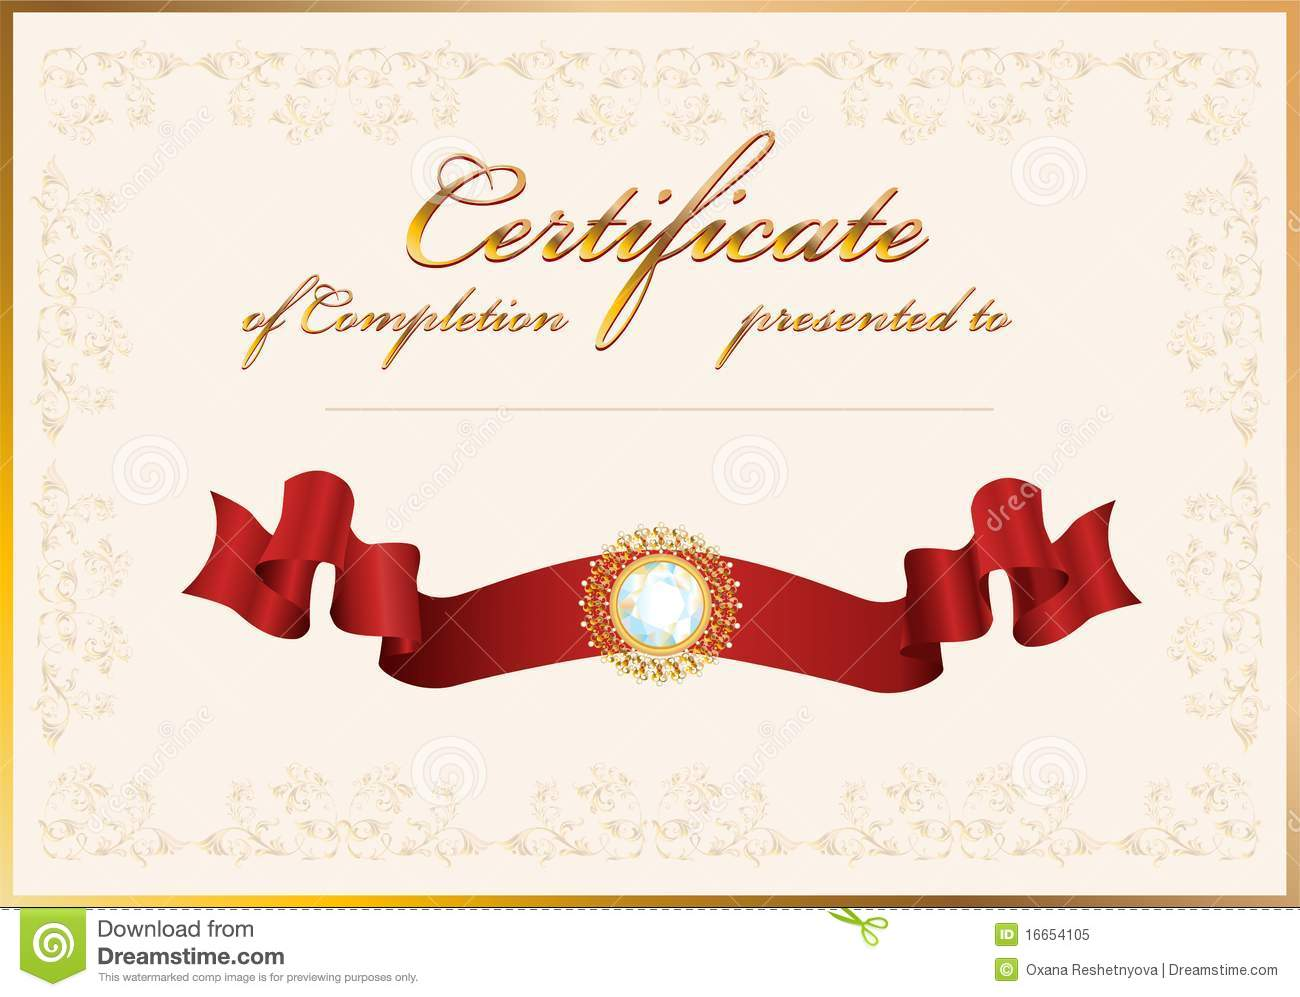 Certificate of completiontemplate stock vector image 16654105 certificate of completiontemplate yelopaper Image collections